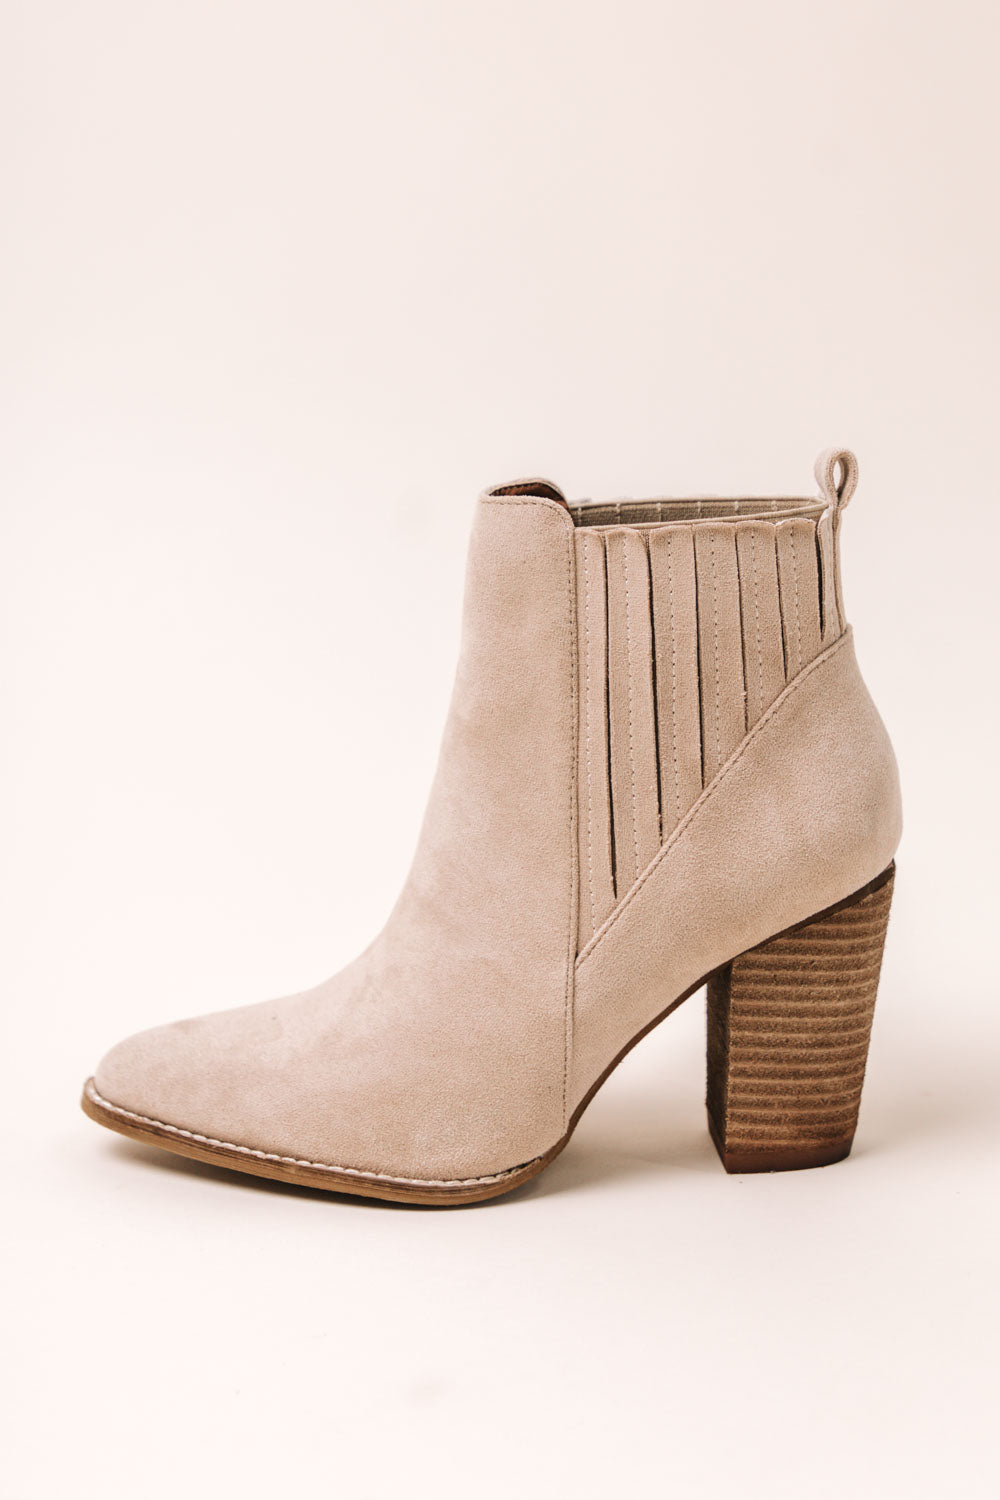 Jackie Heeled Booties in Taupe